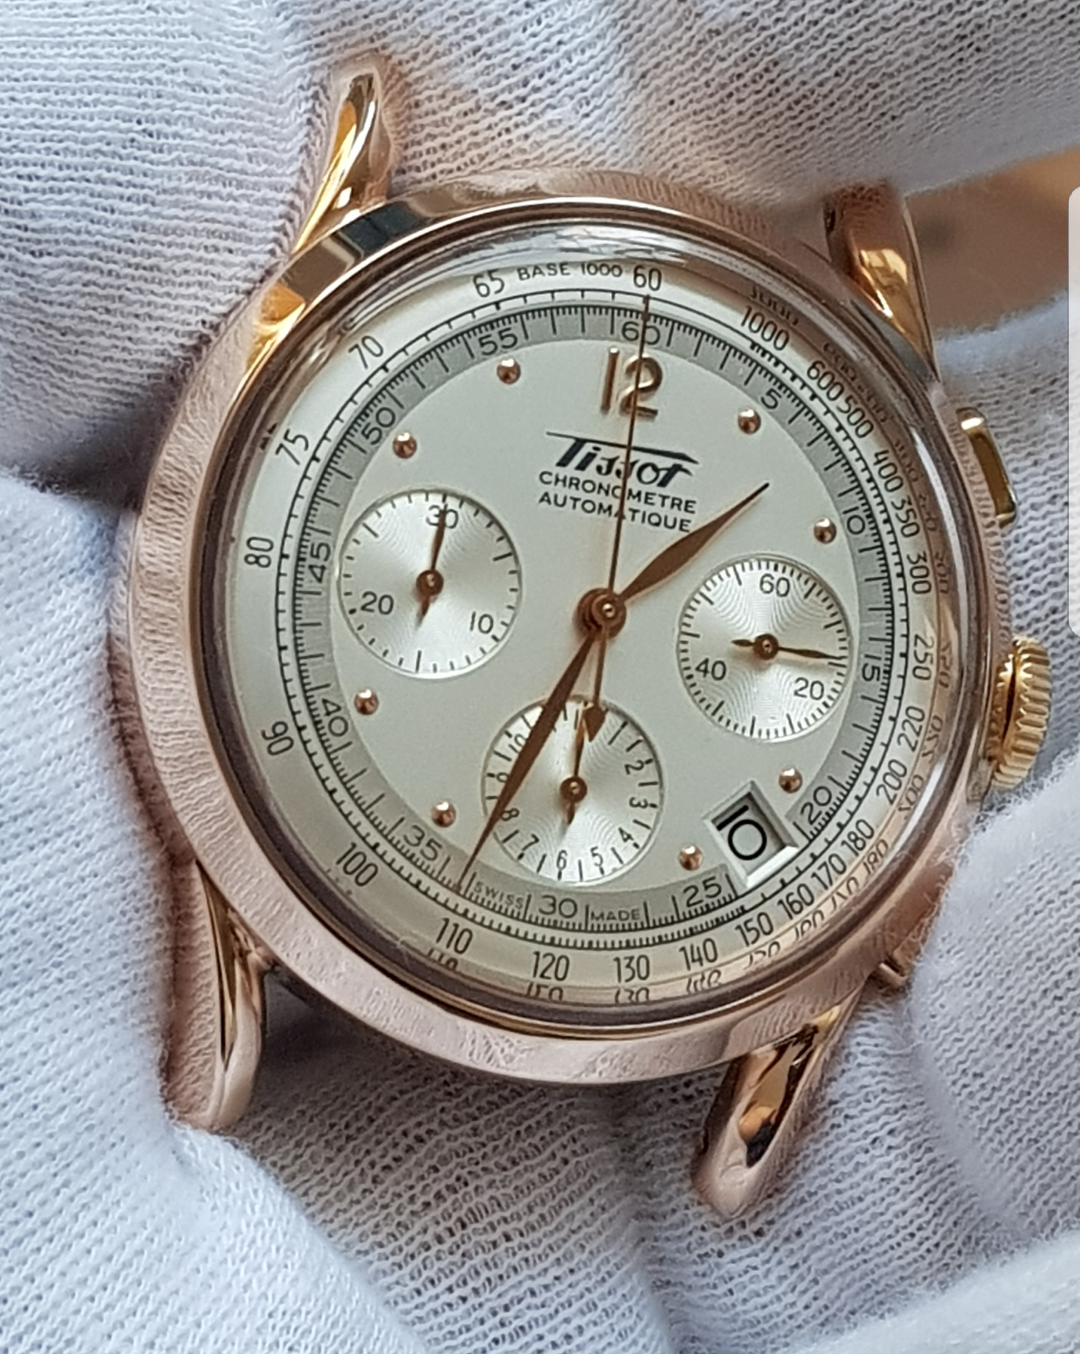 8c9a3df36f8 Tissot heritage rare 18k rose gold chronograph 150 anniversary in ...